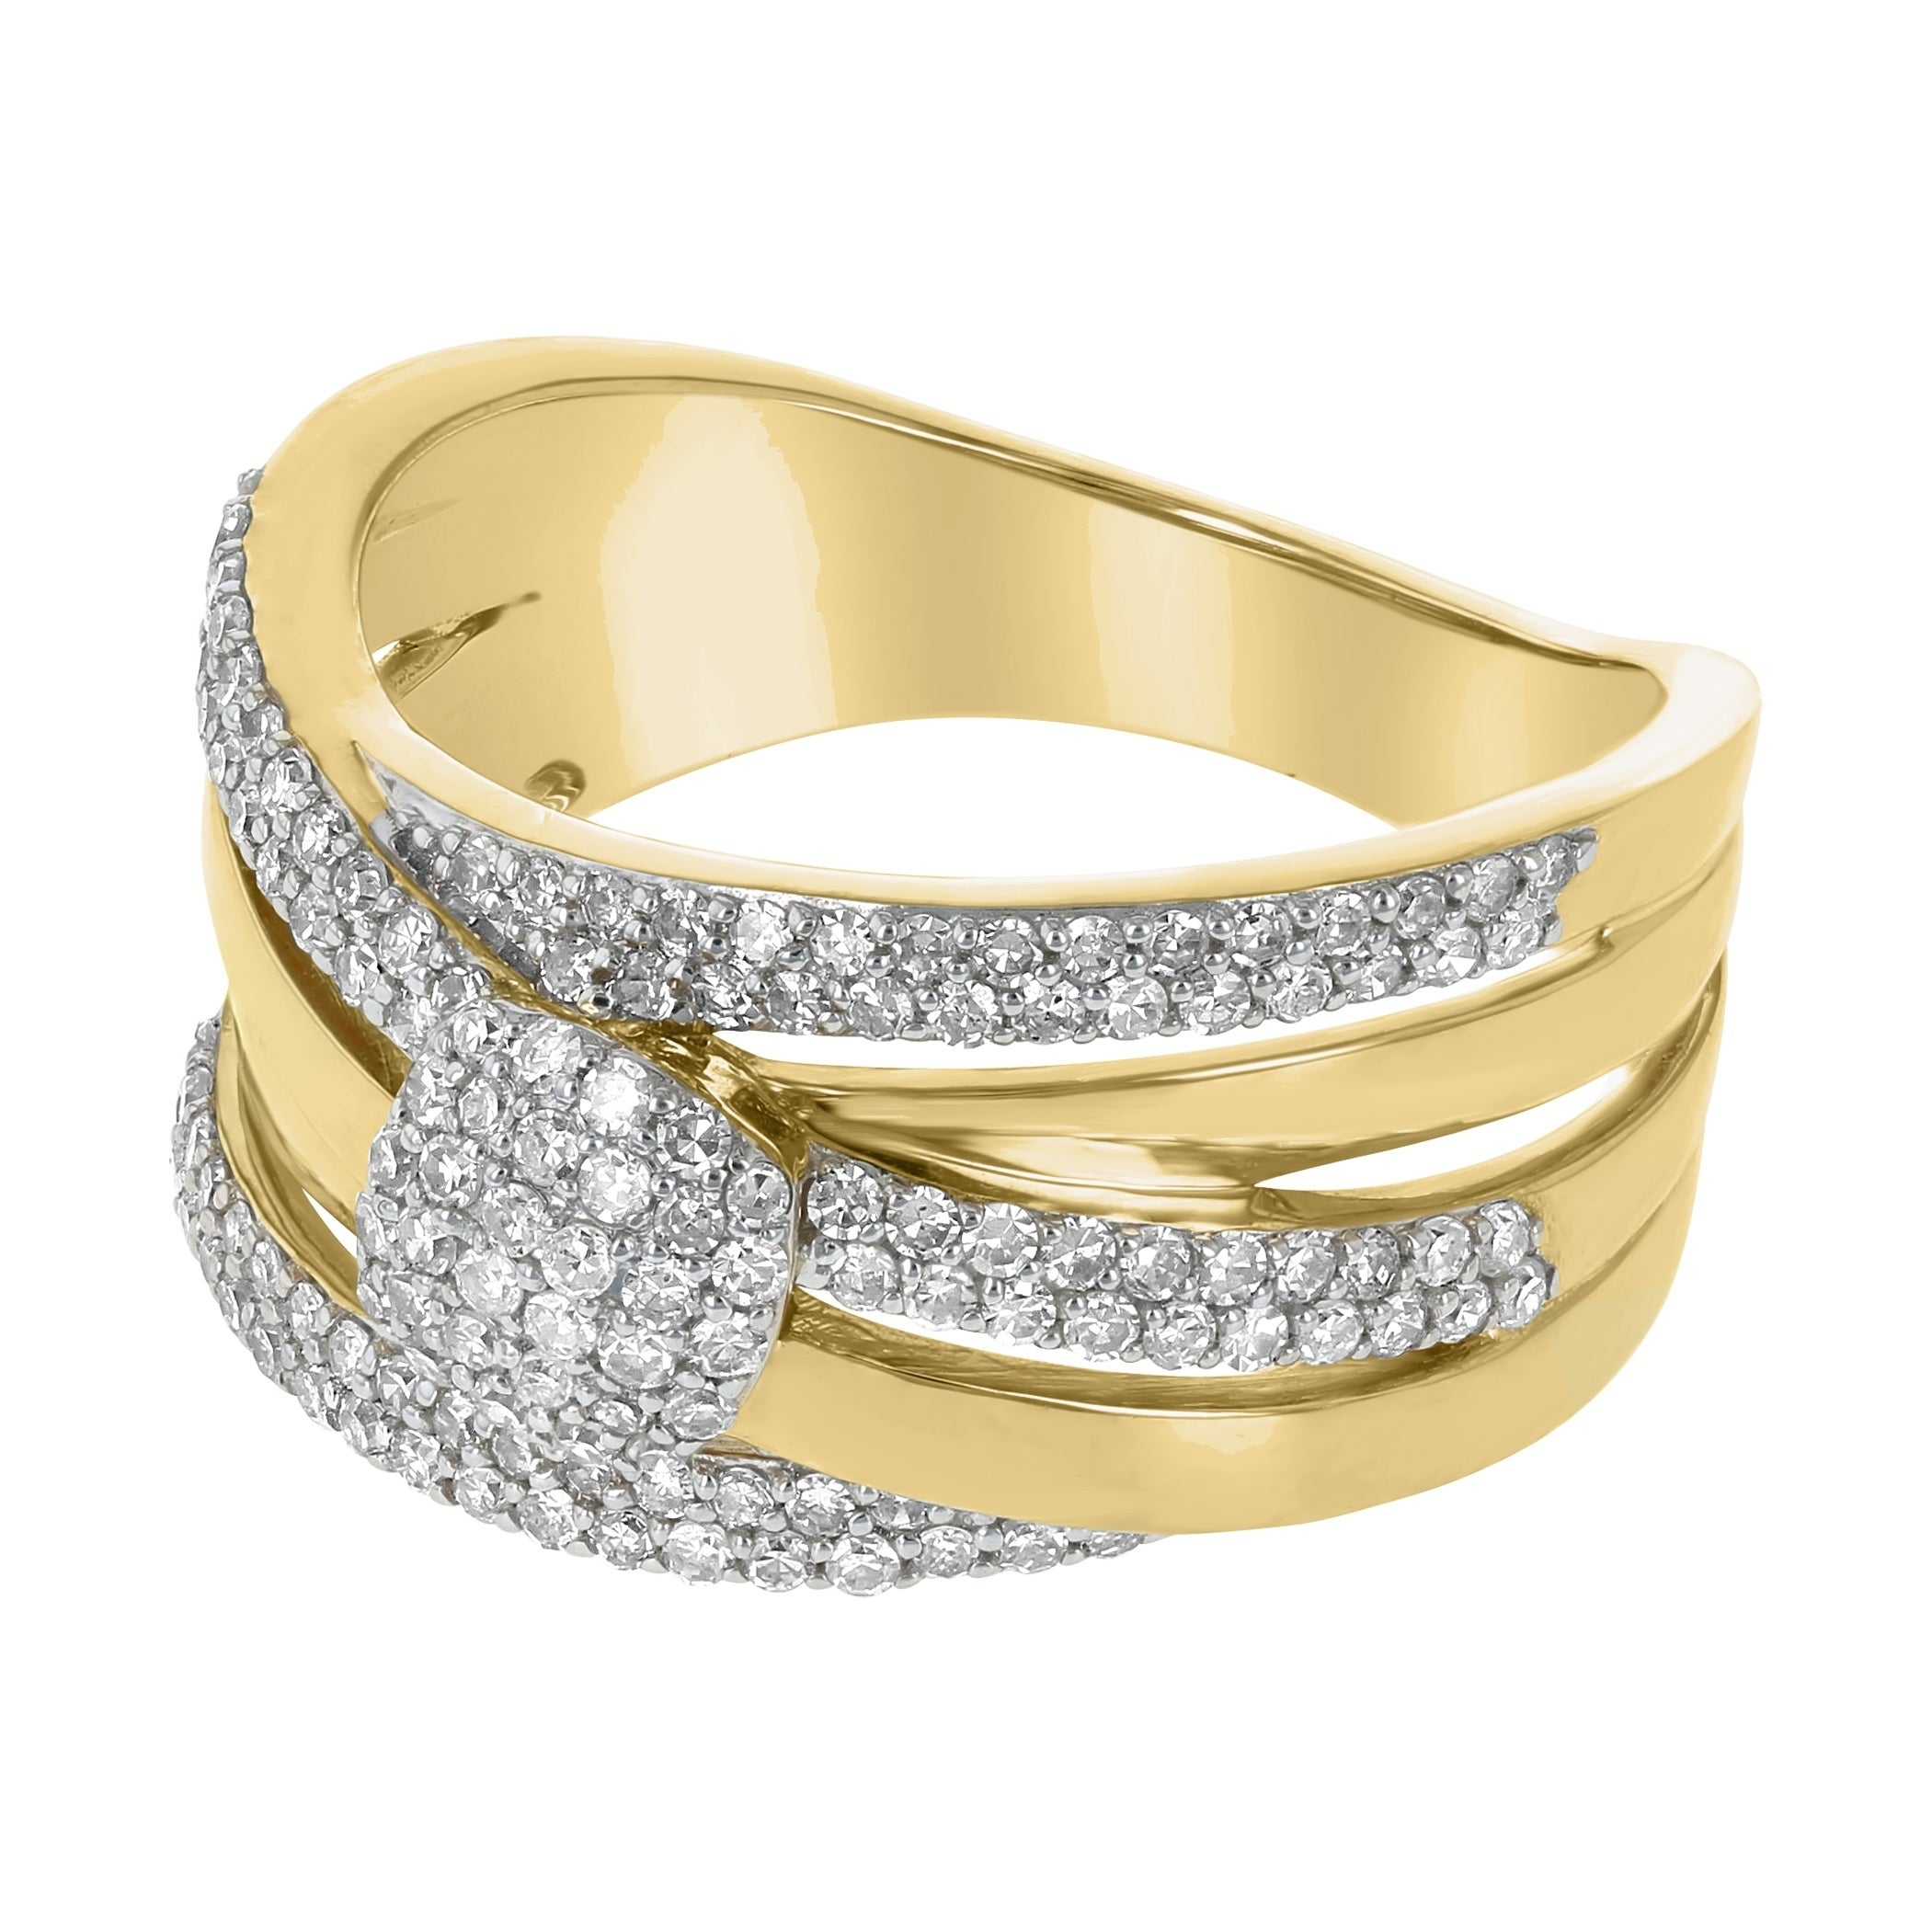 milgrain wedding rings itm white d bands gold band metaltype shape diamond ring edge carat yellow